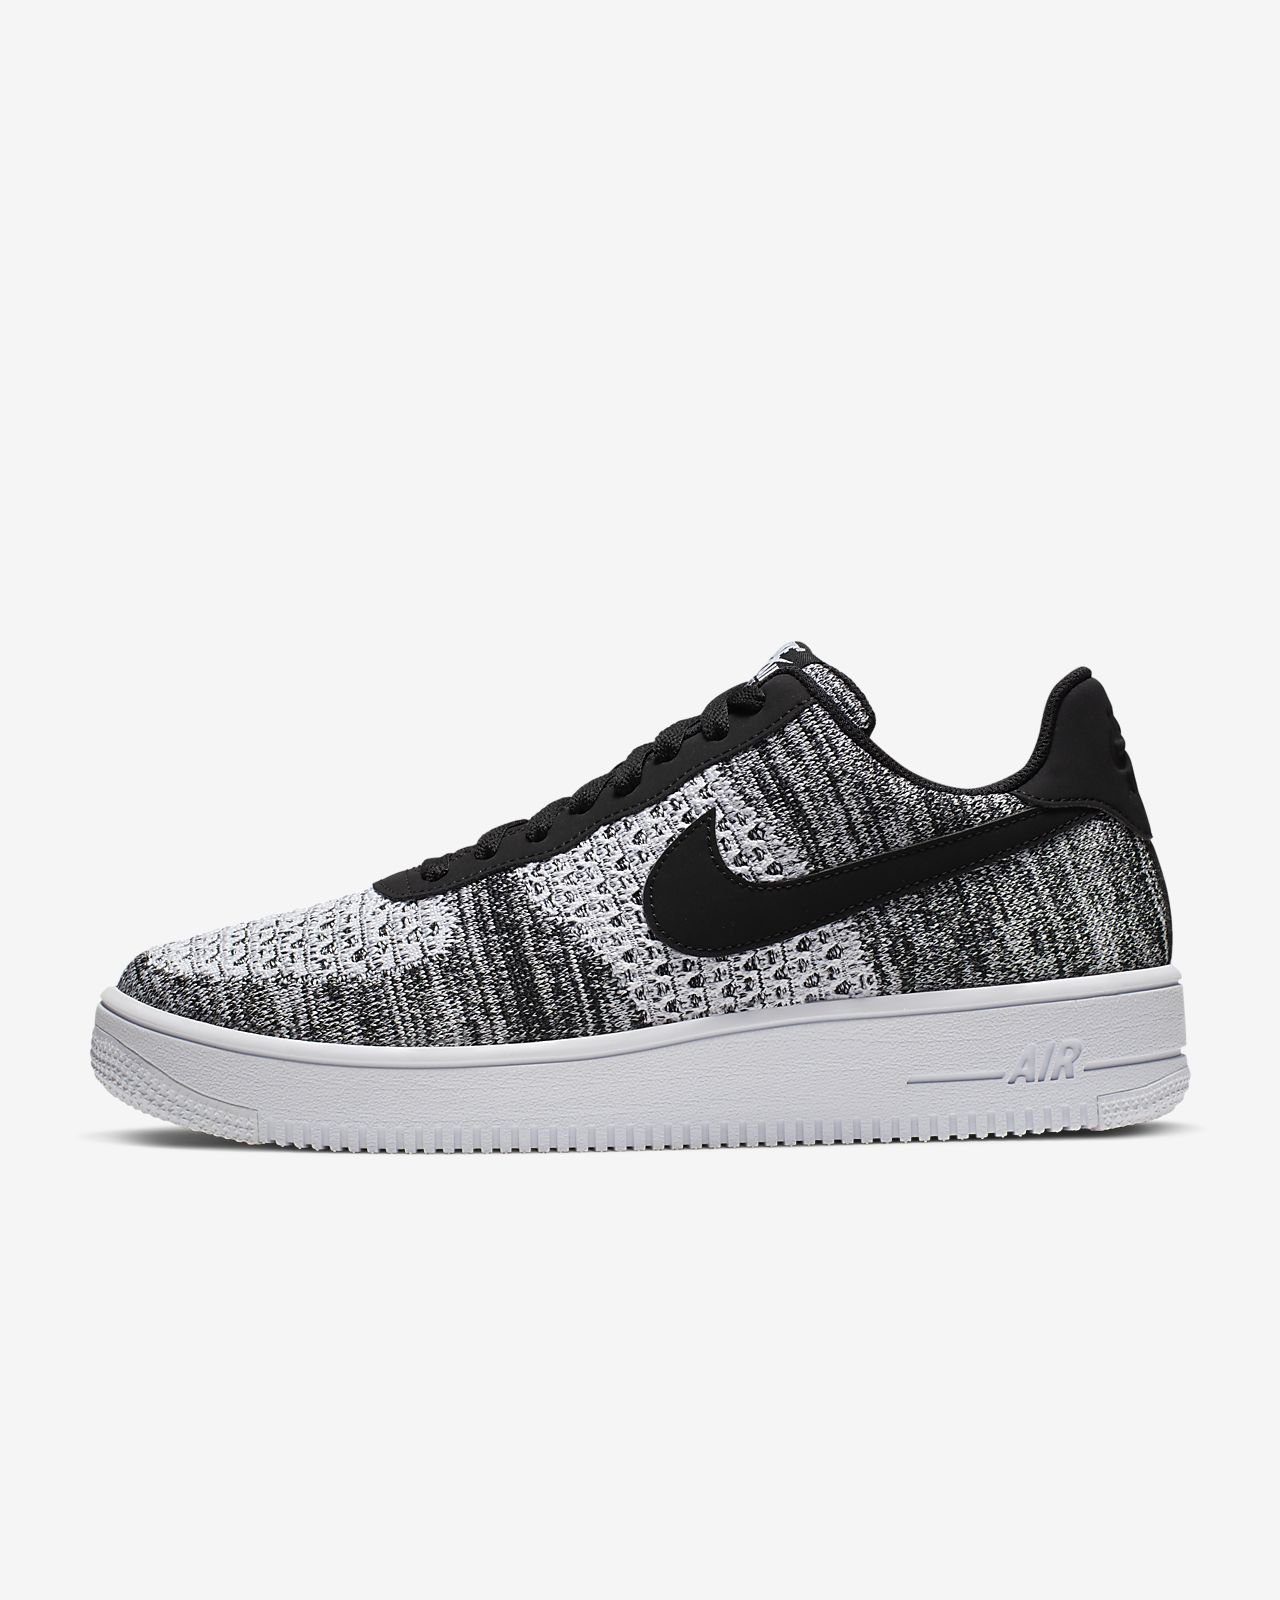 Chaussure Nike Air Force 1 Flyknit 2.0. Nike FR